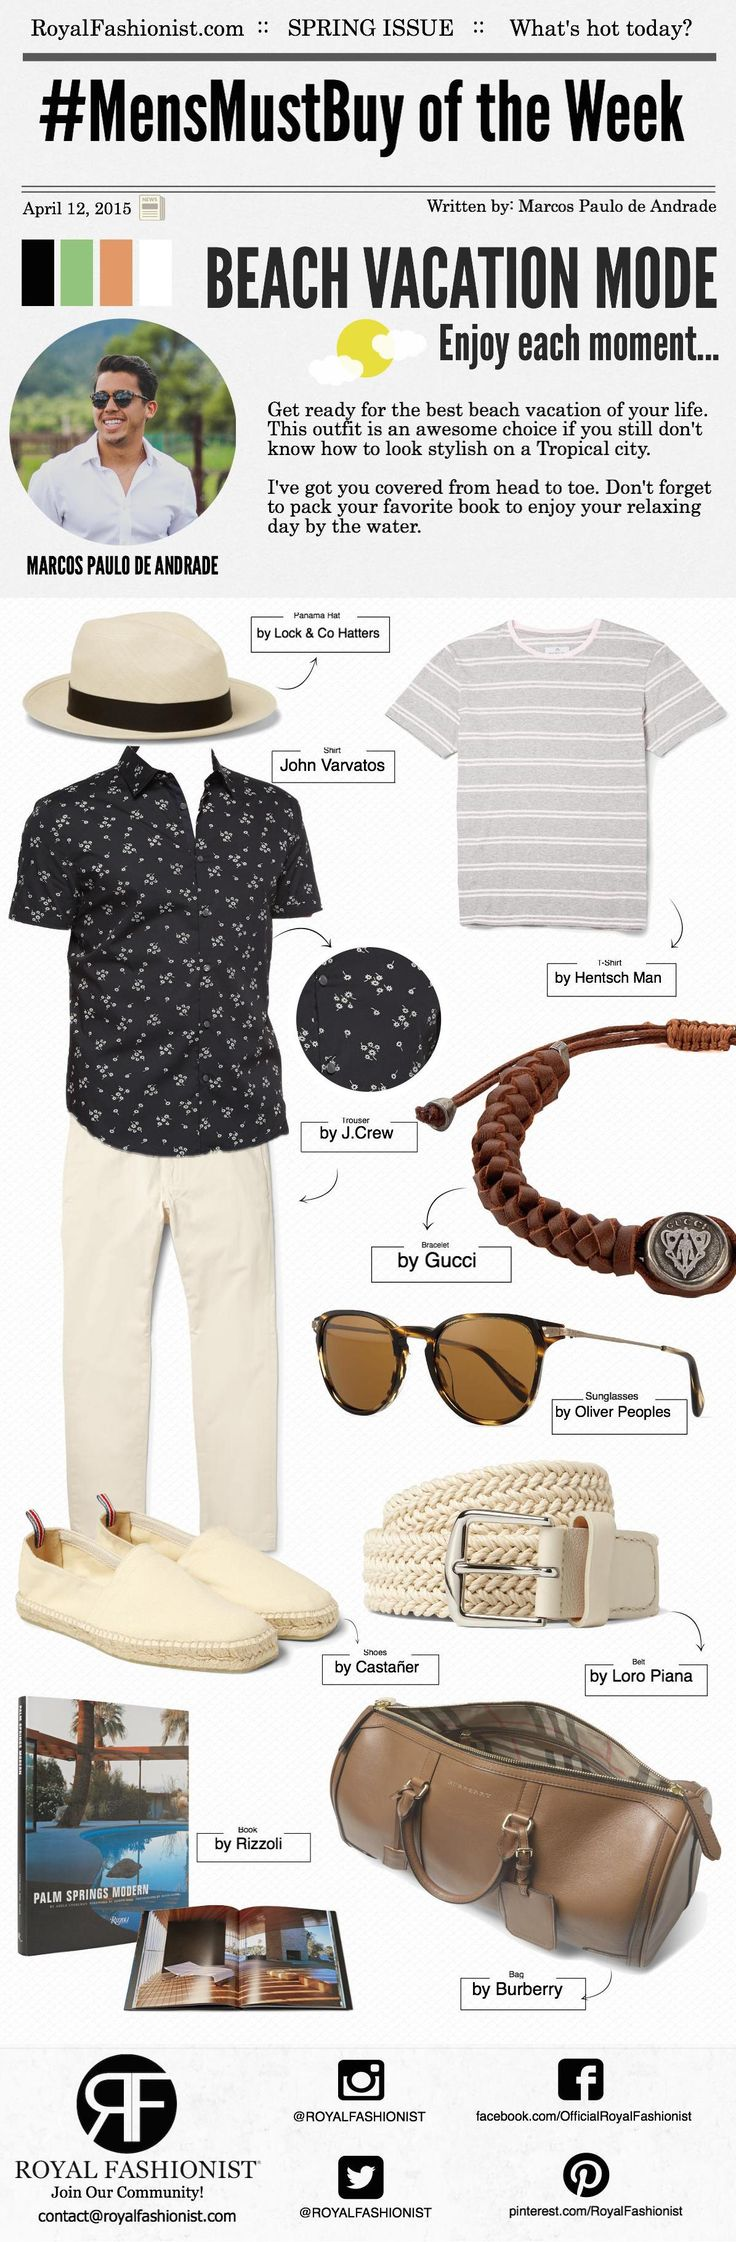 Men's beach outfit ideas 2015 On Pinterest | Royal Fashionist  Get ready for the best beach vacation of your life. This outfit is an awesome choice if you still don't know how to look stylish in a Tropical city. I've got you covered from head to toe. #mensfashion #infographic